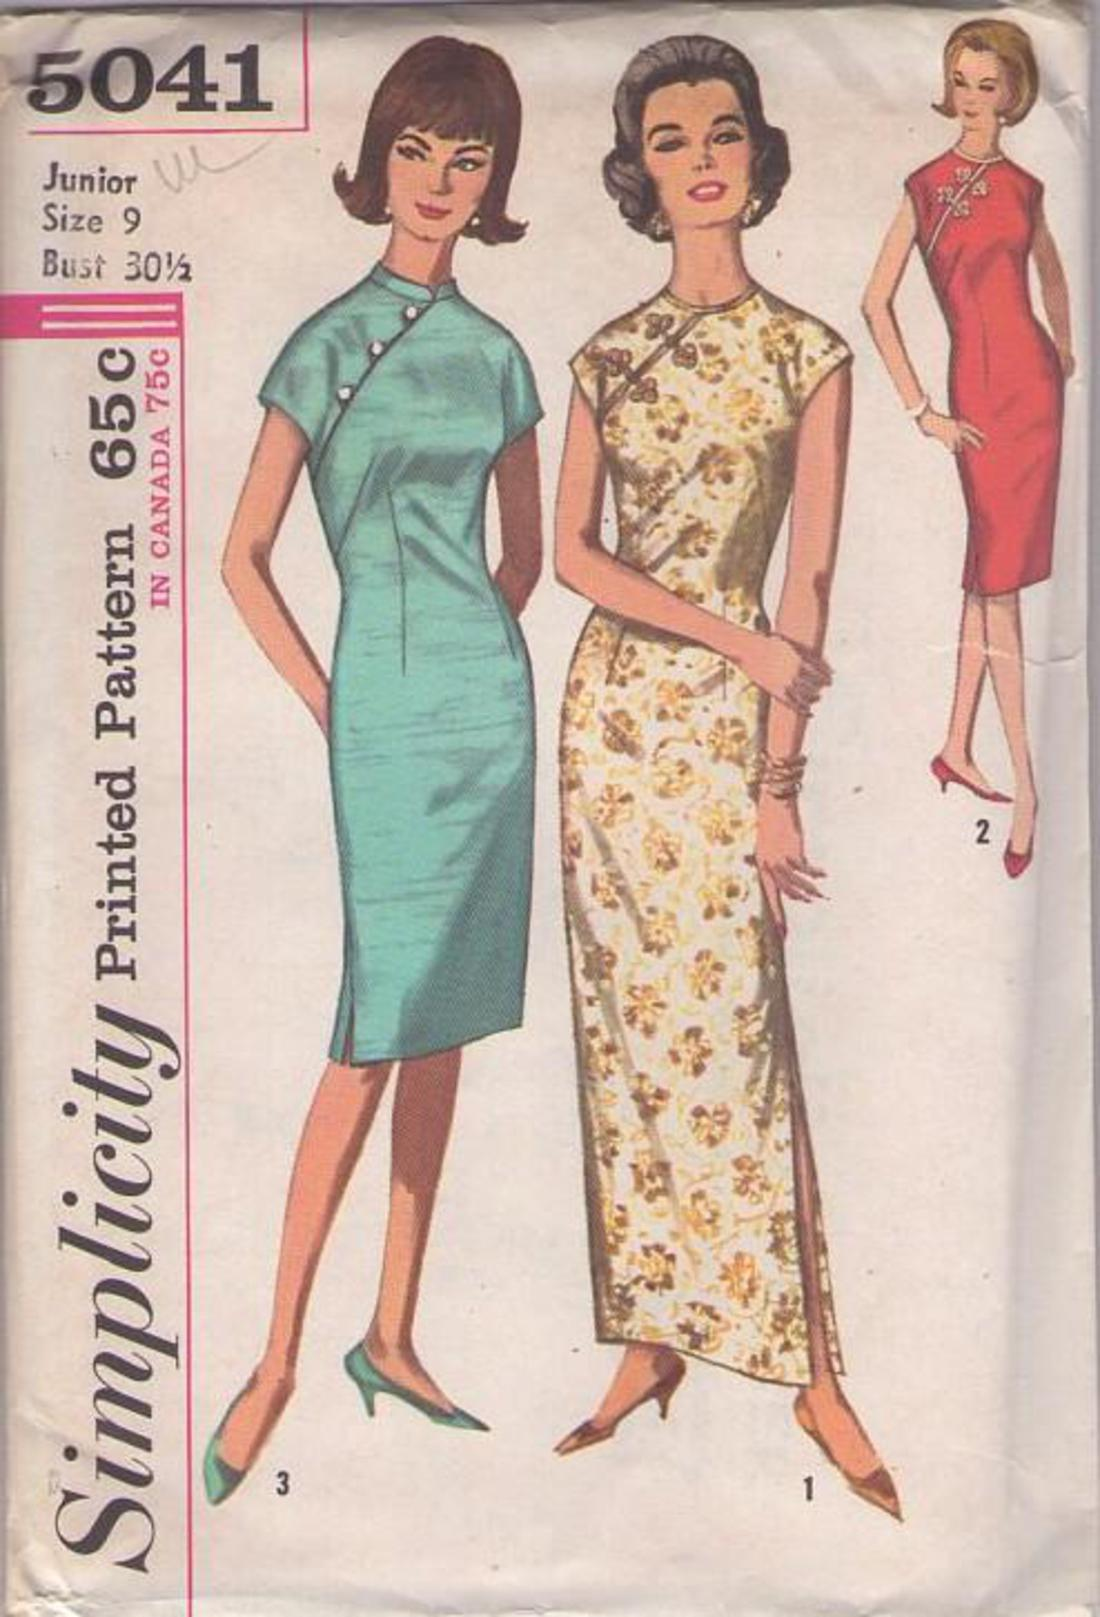 5677a305c ... Patterns - Simplicity 5041 Vintage 60's Sewing Pattern AMAZING  Rockabilly Viva Las Vegas Coveted Asian Chinese Form Fitting Cheongsam  Hostess Maxi Gown, ...